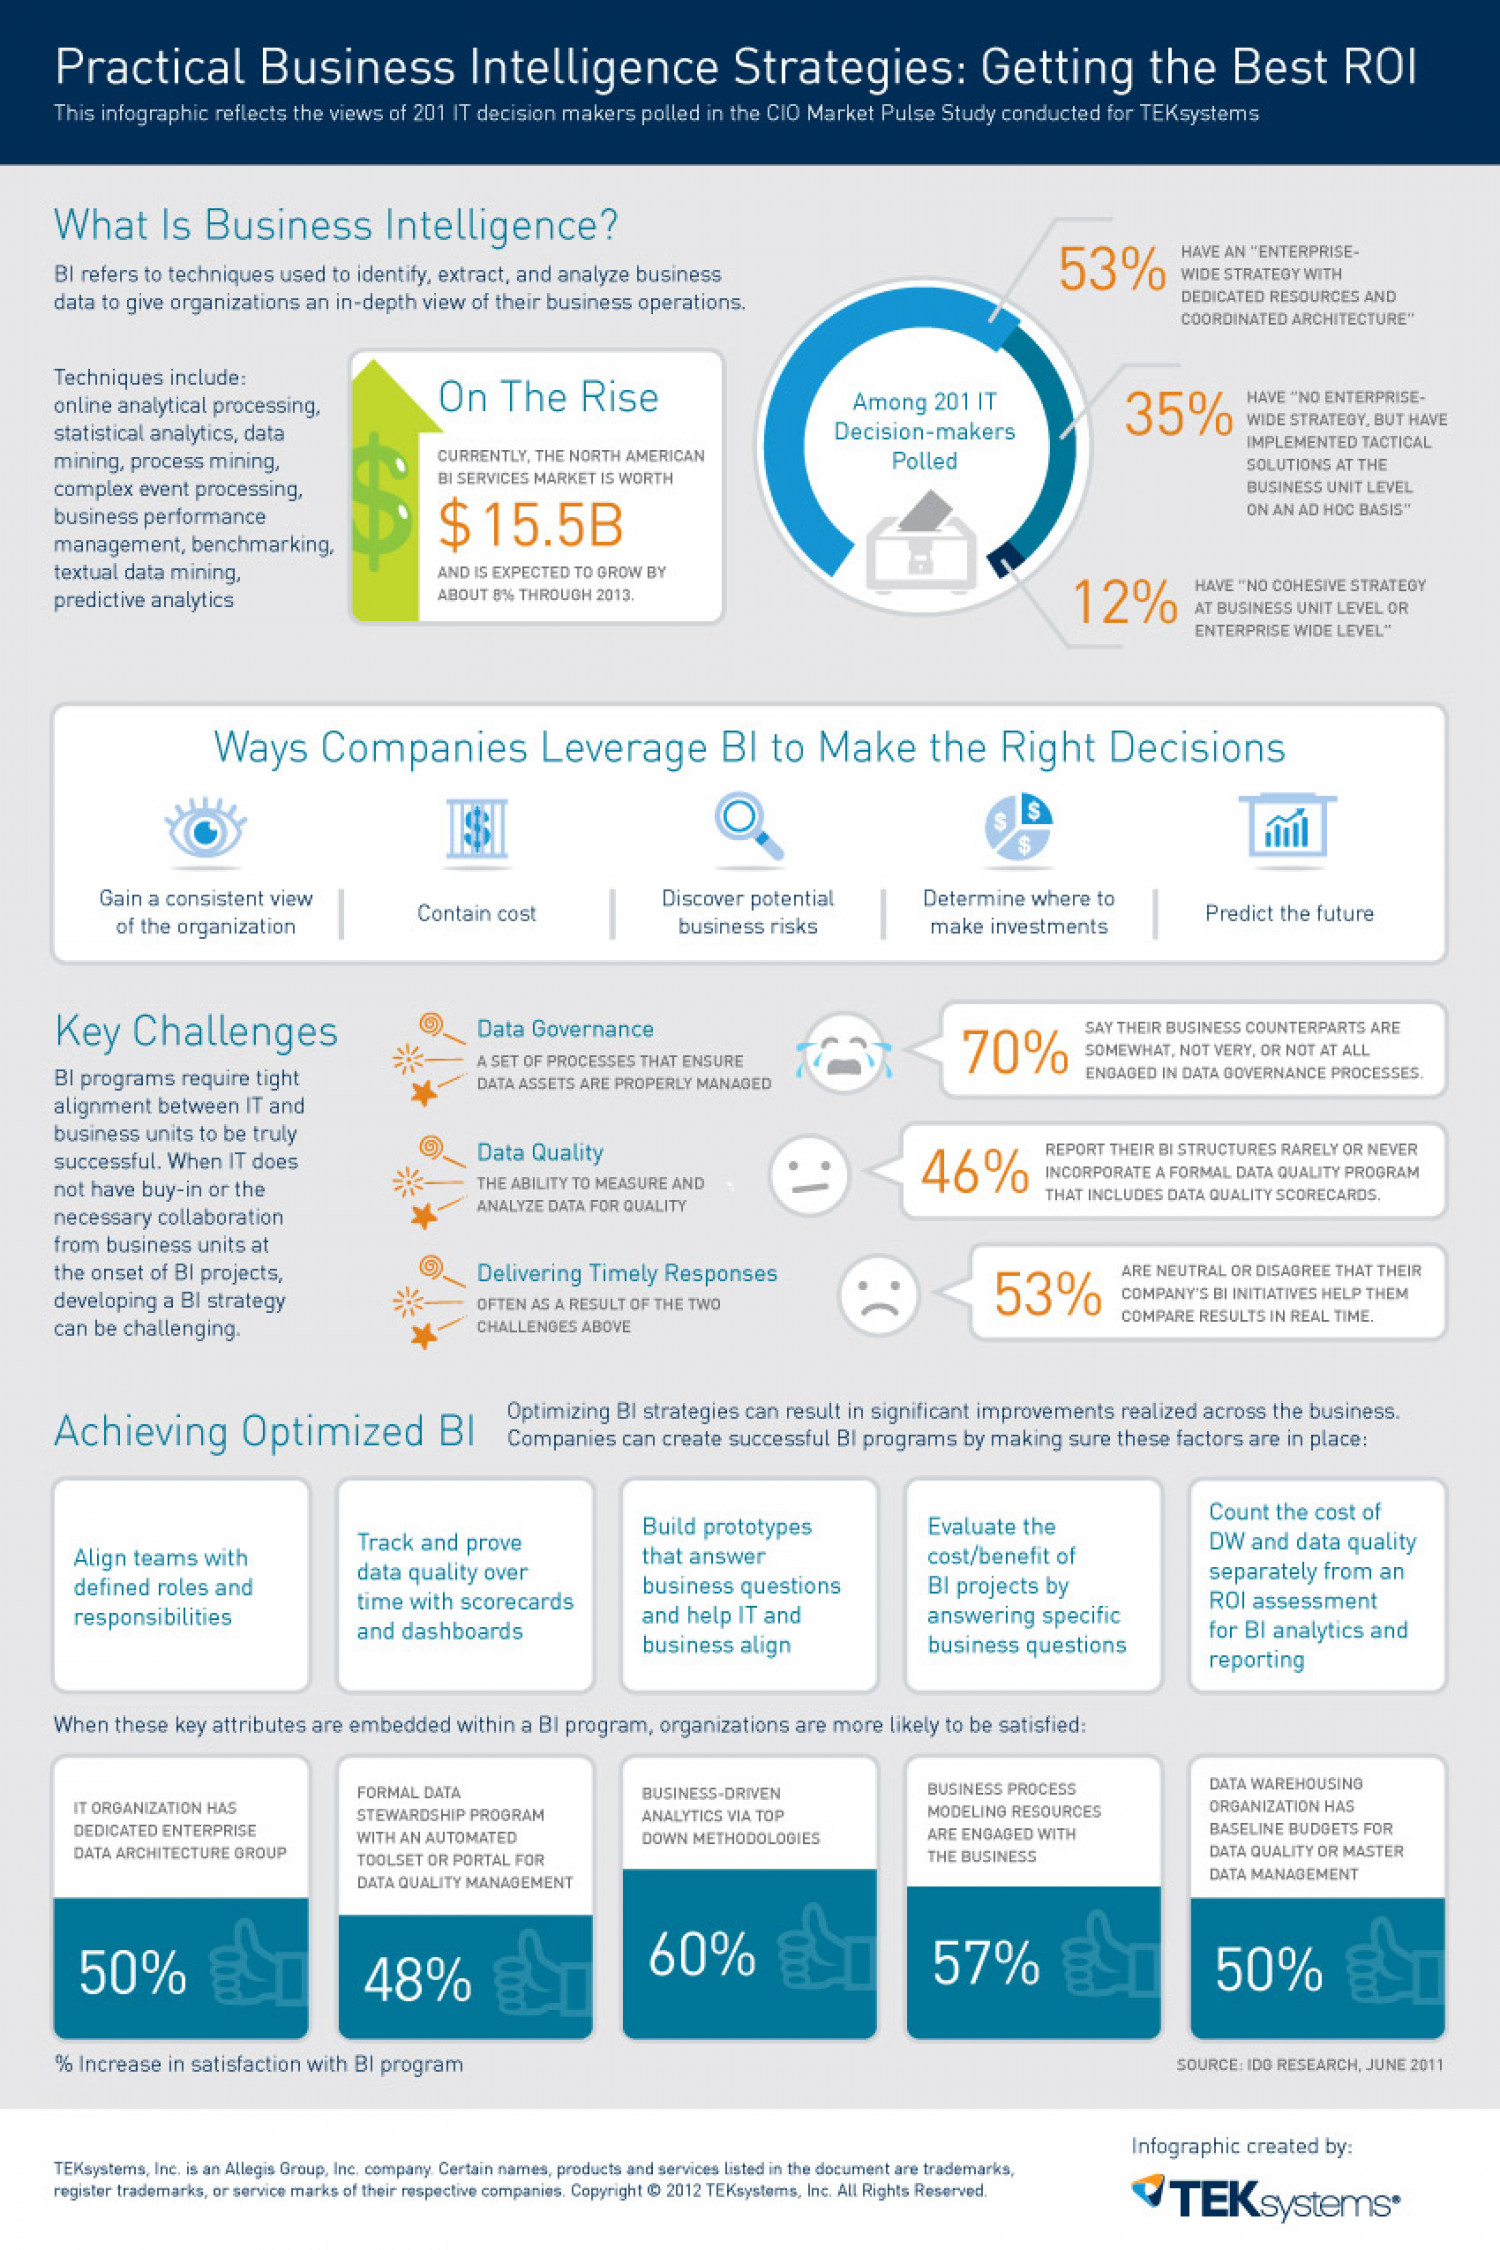 Practical Business Intelligence Strategies: Getting the Best ROI Infographic